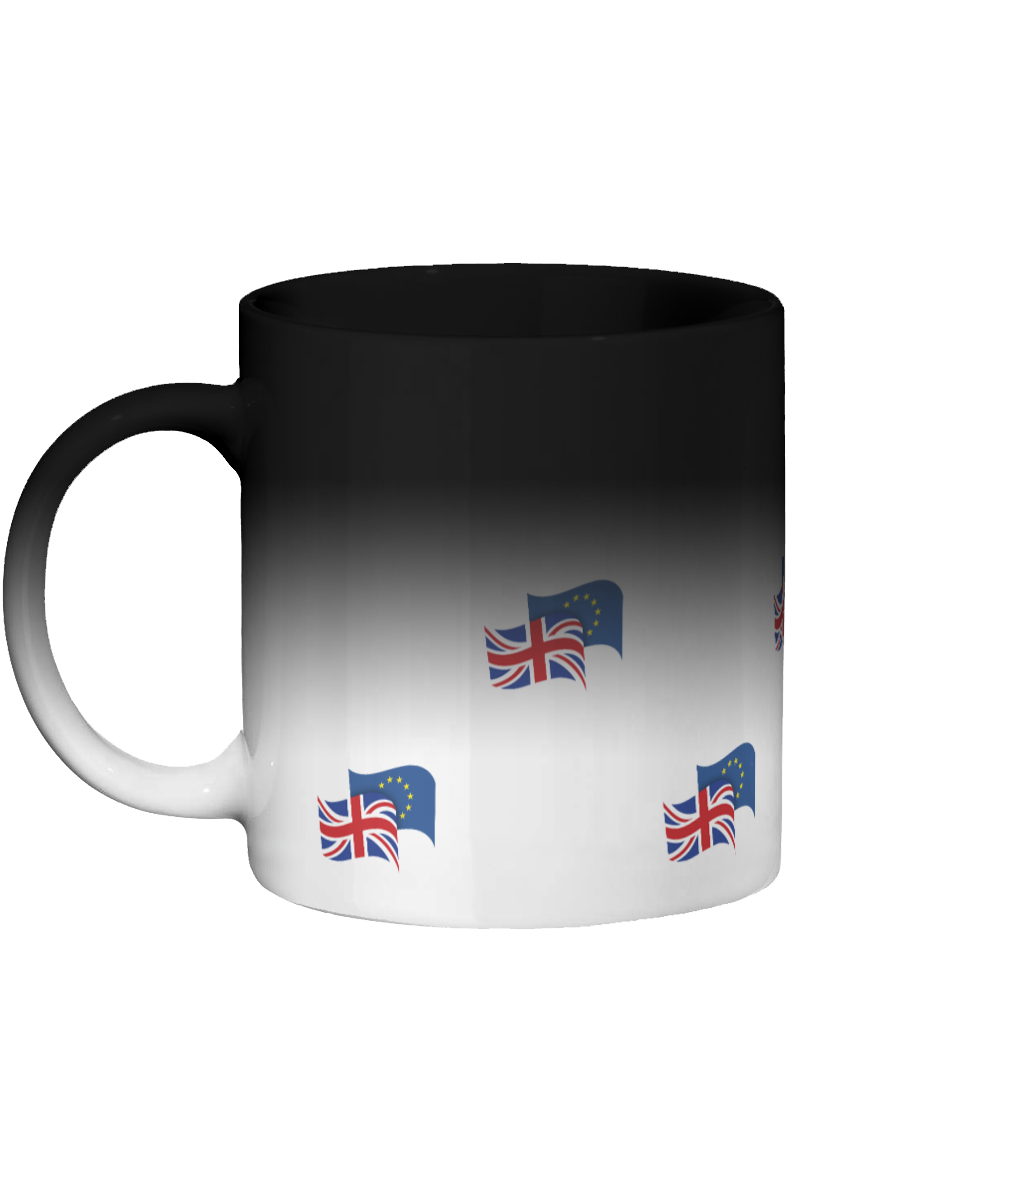 Colour Changing Ceramic Mug (flags)